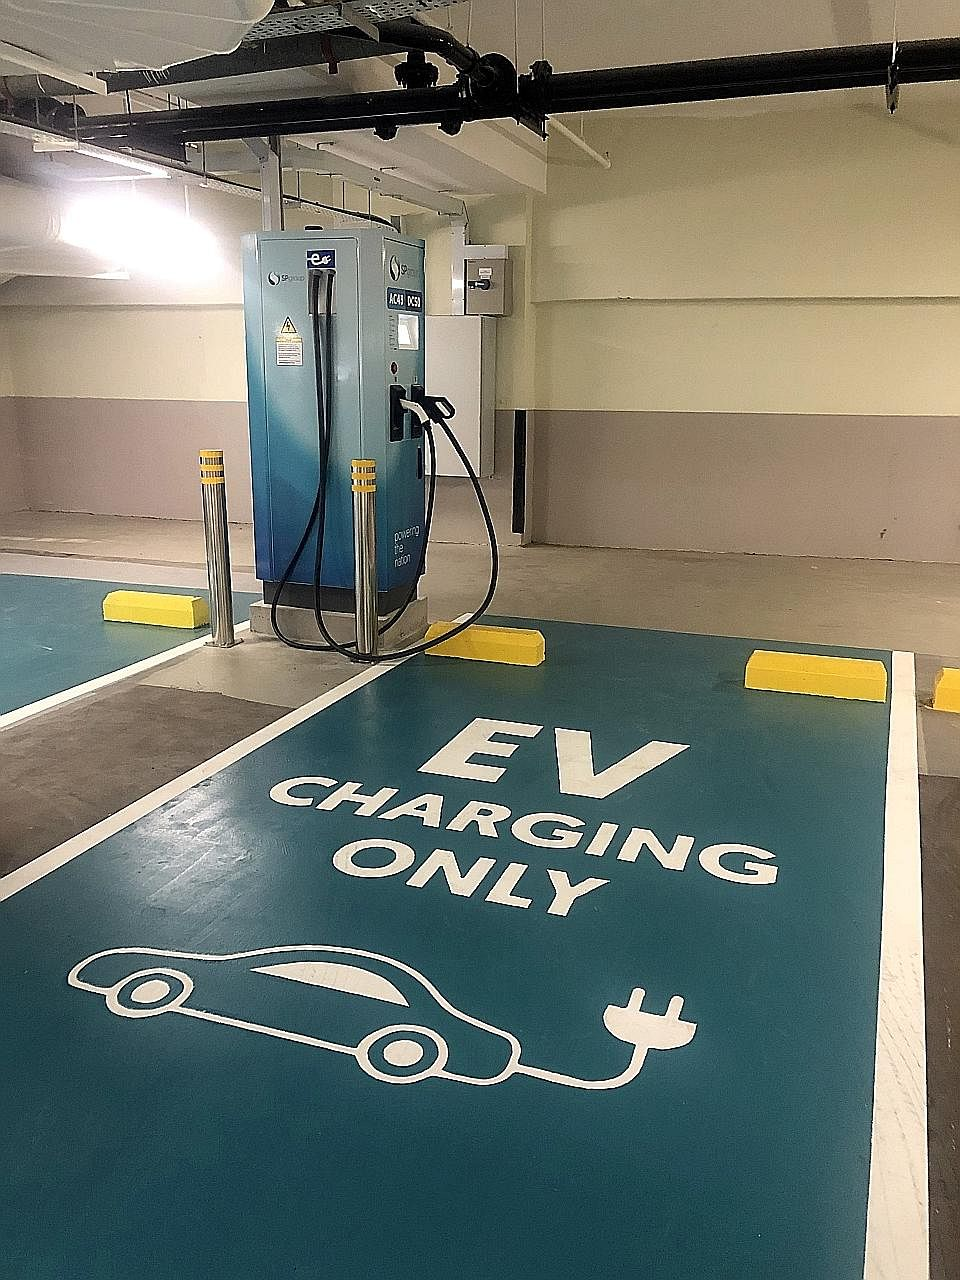 City Developments' (CDL) electric vehicle charging station at Republic Plaza. Carbon footprint reduction is one of CDL's top priorities.